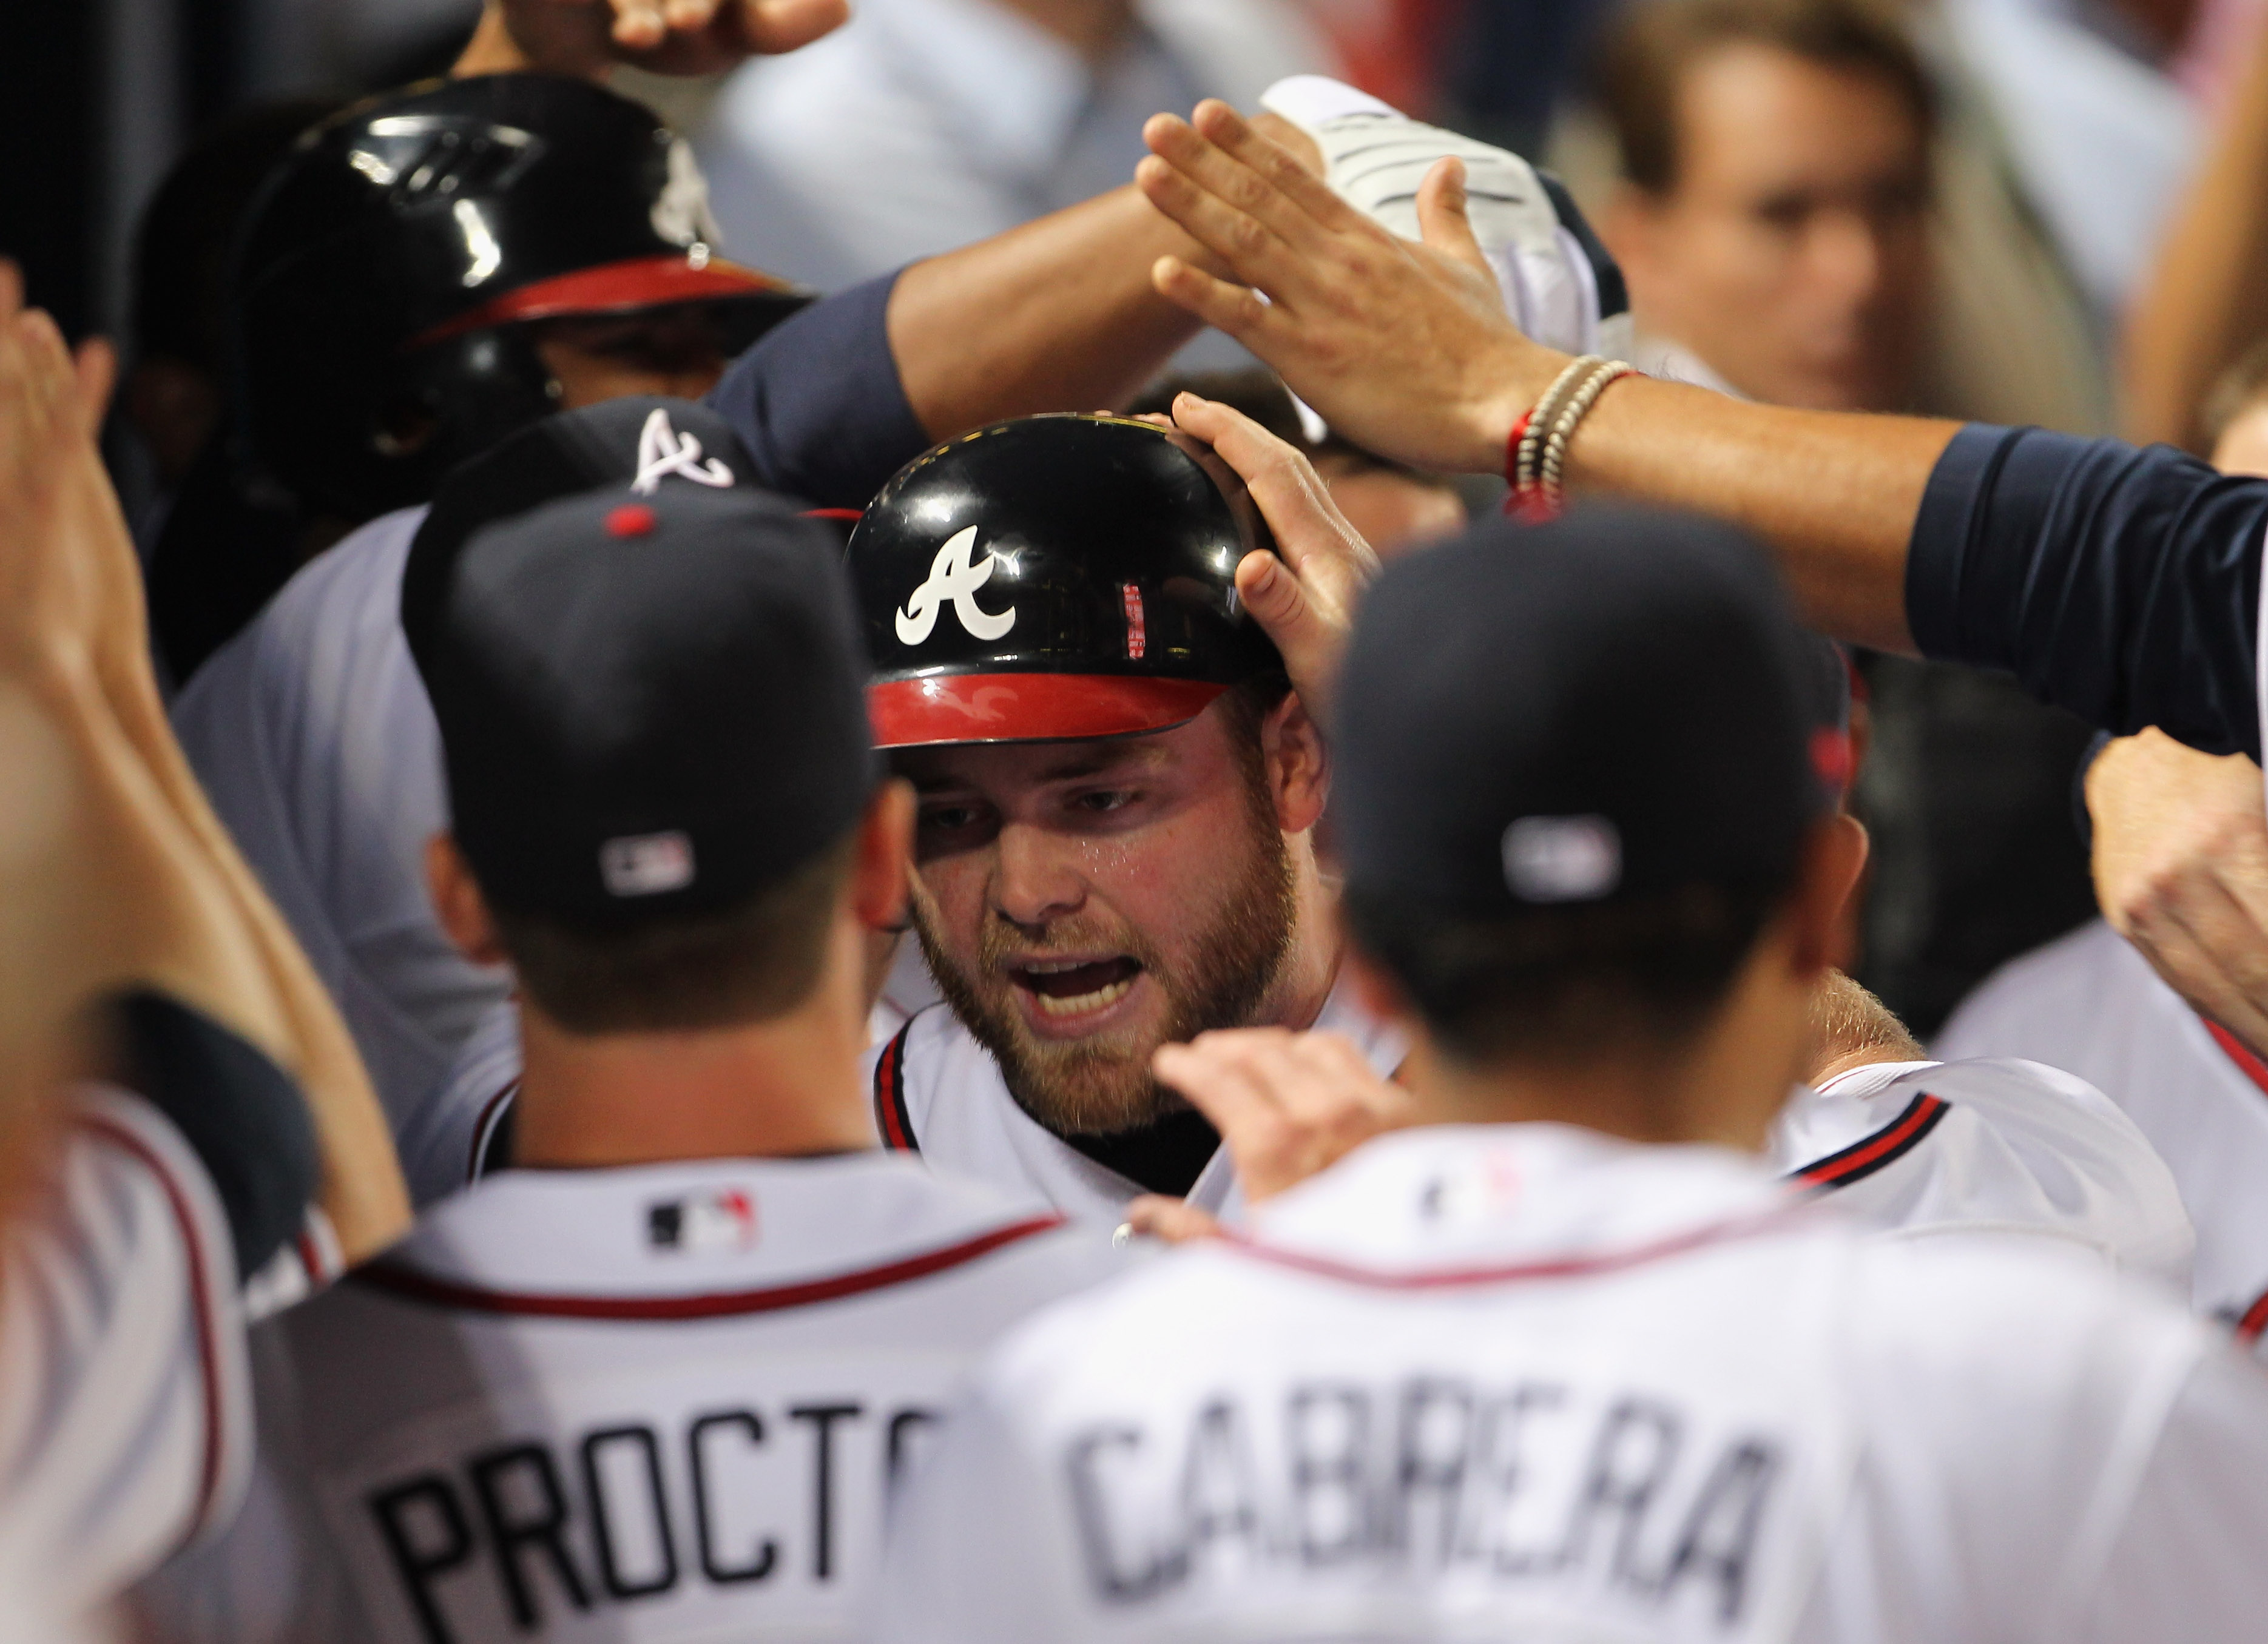 ATLANTA - OCTOBER 11:  Brian McCann #16 of the Atlanta Braves is congratulated by teammates after hitting a solo home run during the 6th inning of Game Four of the NLDS of the 2010 MLB Playoffs against the San Francisco Giants on October 11, 2010  at Turn